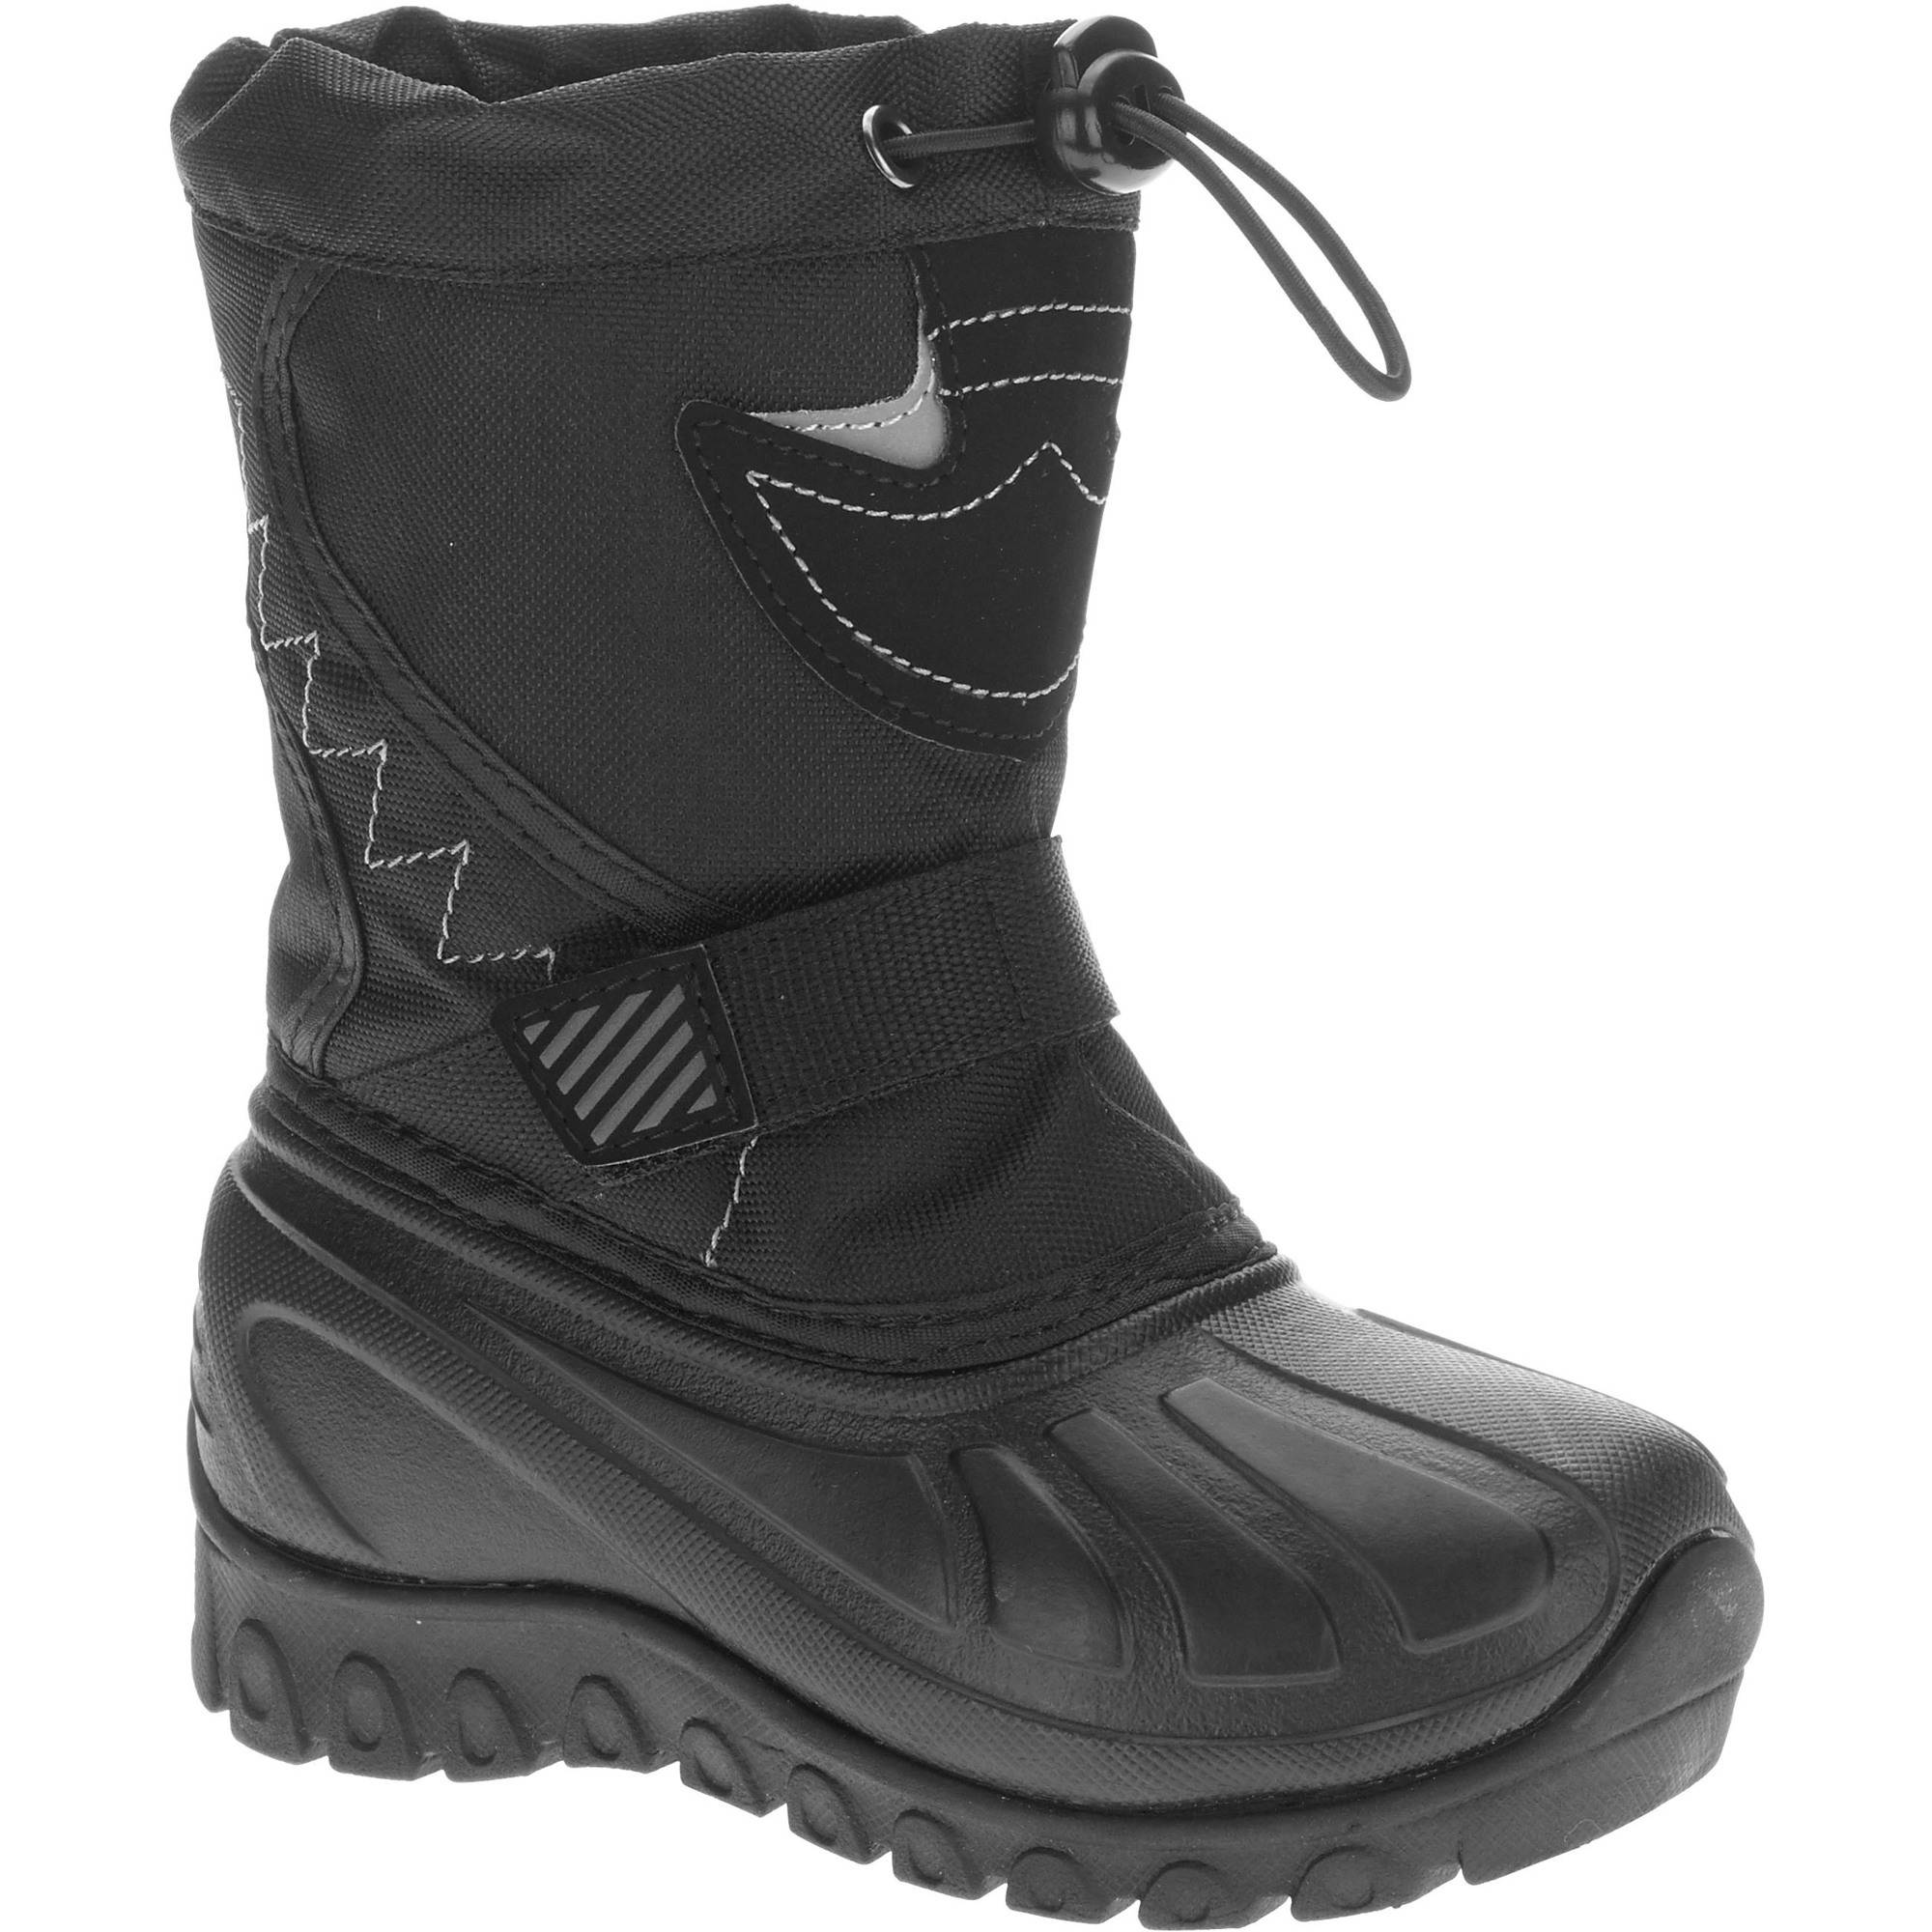 Ozark Trail Toddler Boys' Temp Rated Winter Boot